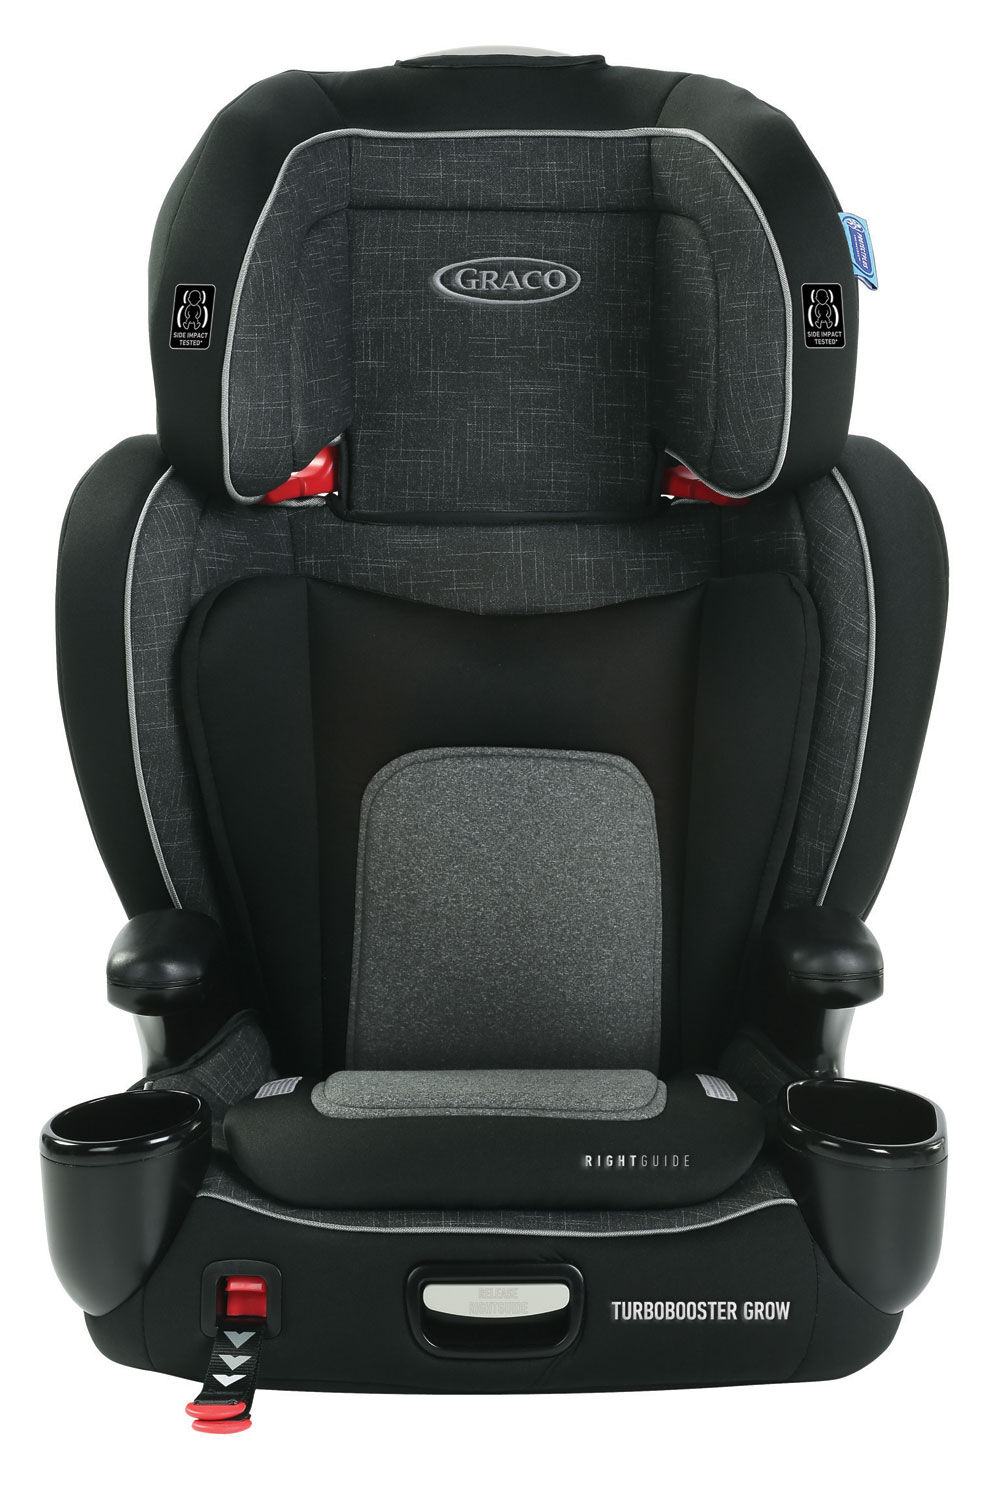 West Point Graco TurboBooster Grow High Back Booster Seat Featuring RightGuide Seat Belt Trainer